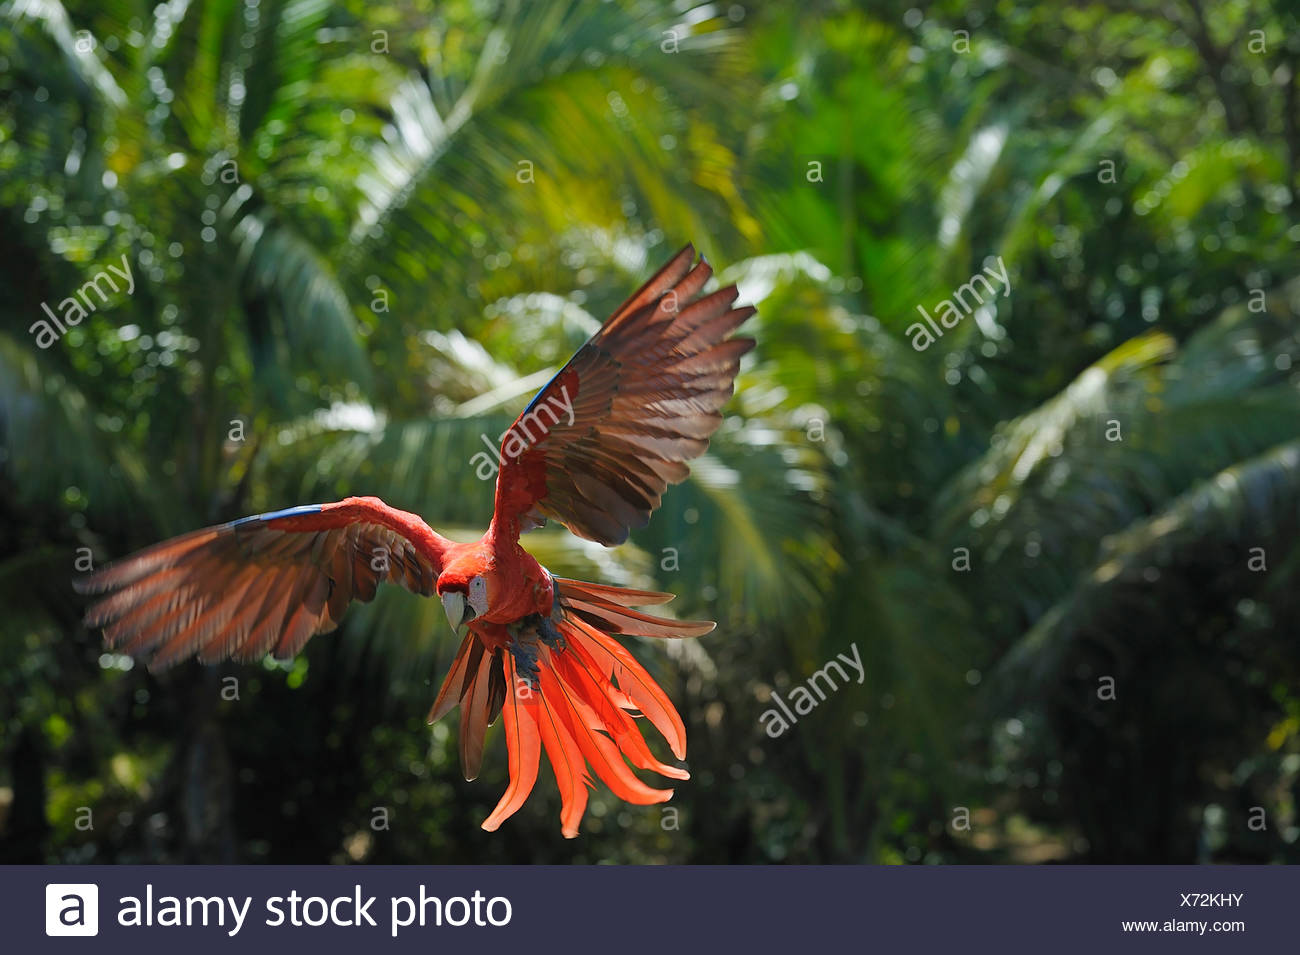 Latin America, Honduras, Bay Islands, Roatan, Scarlet macaw parrot flying - Stock Image